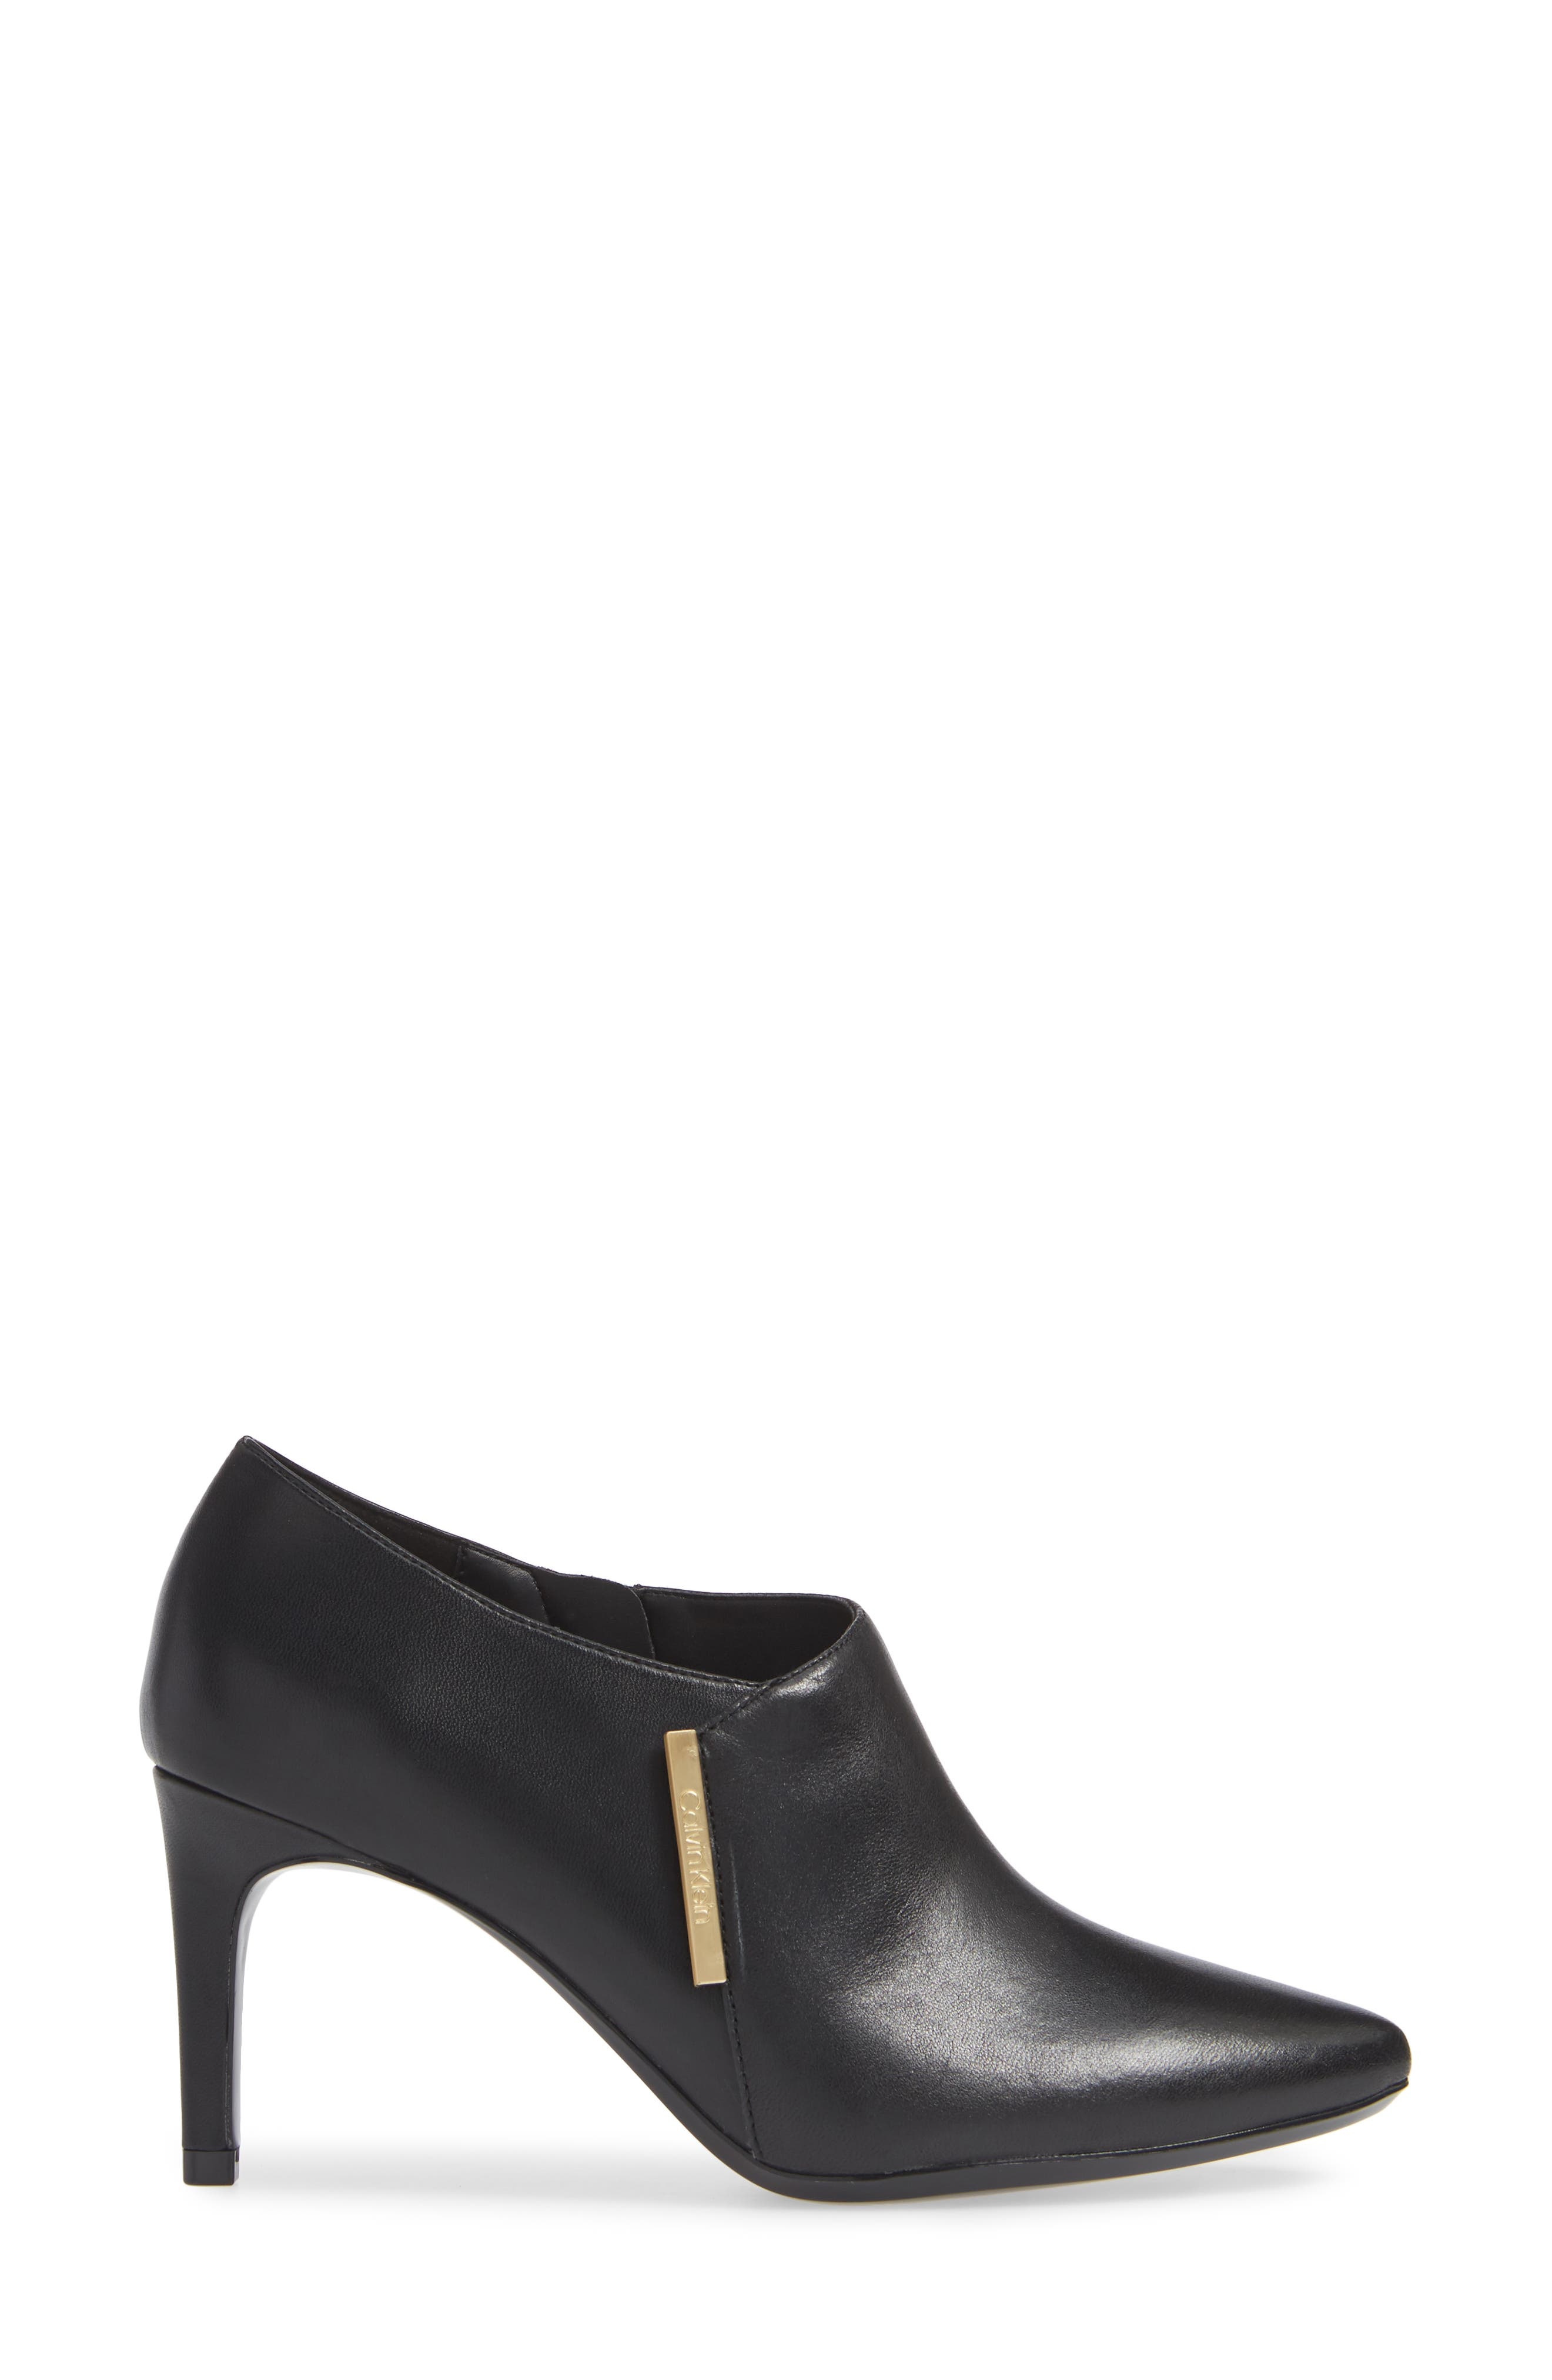 Jeanna Bootie,                             Alternate thumbnail 3, color,                             BLACK LEATHER